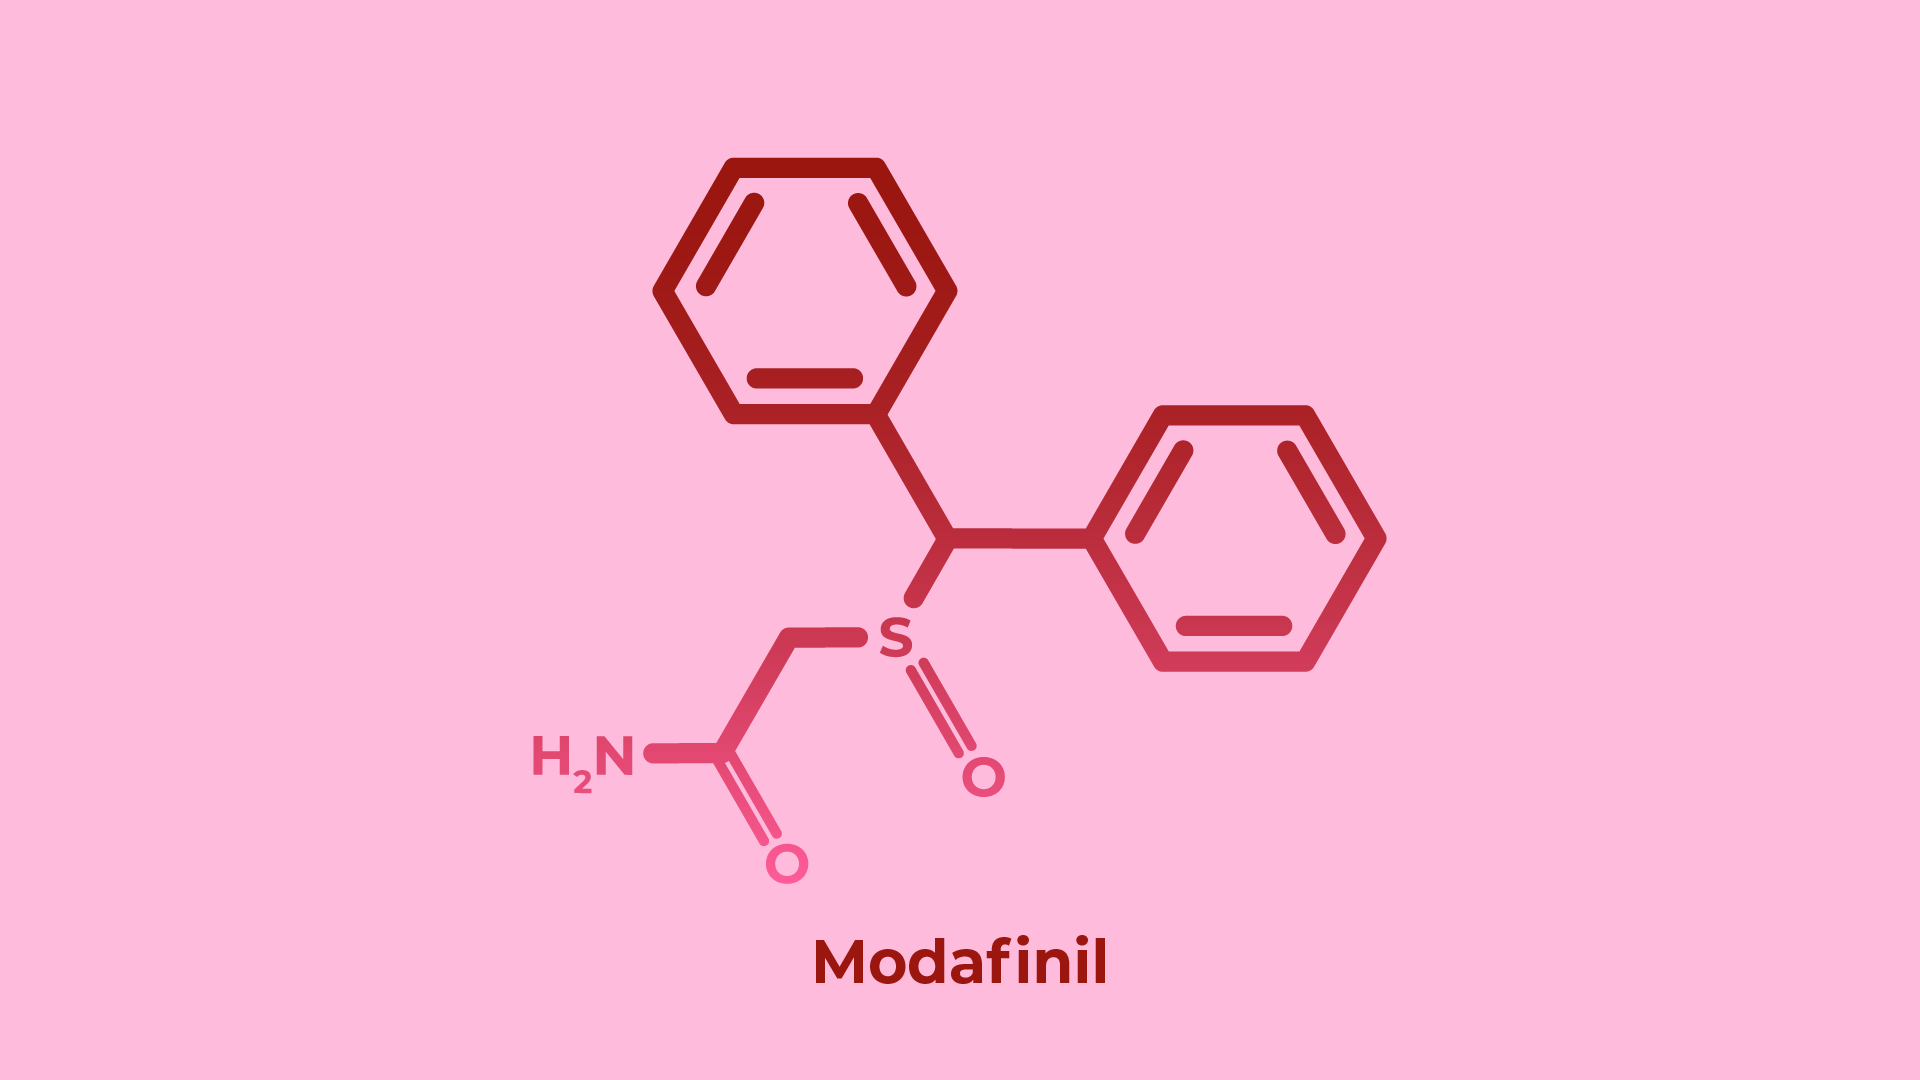 chemical structure/skeleton of modafinil molecule